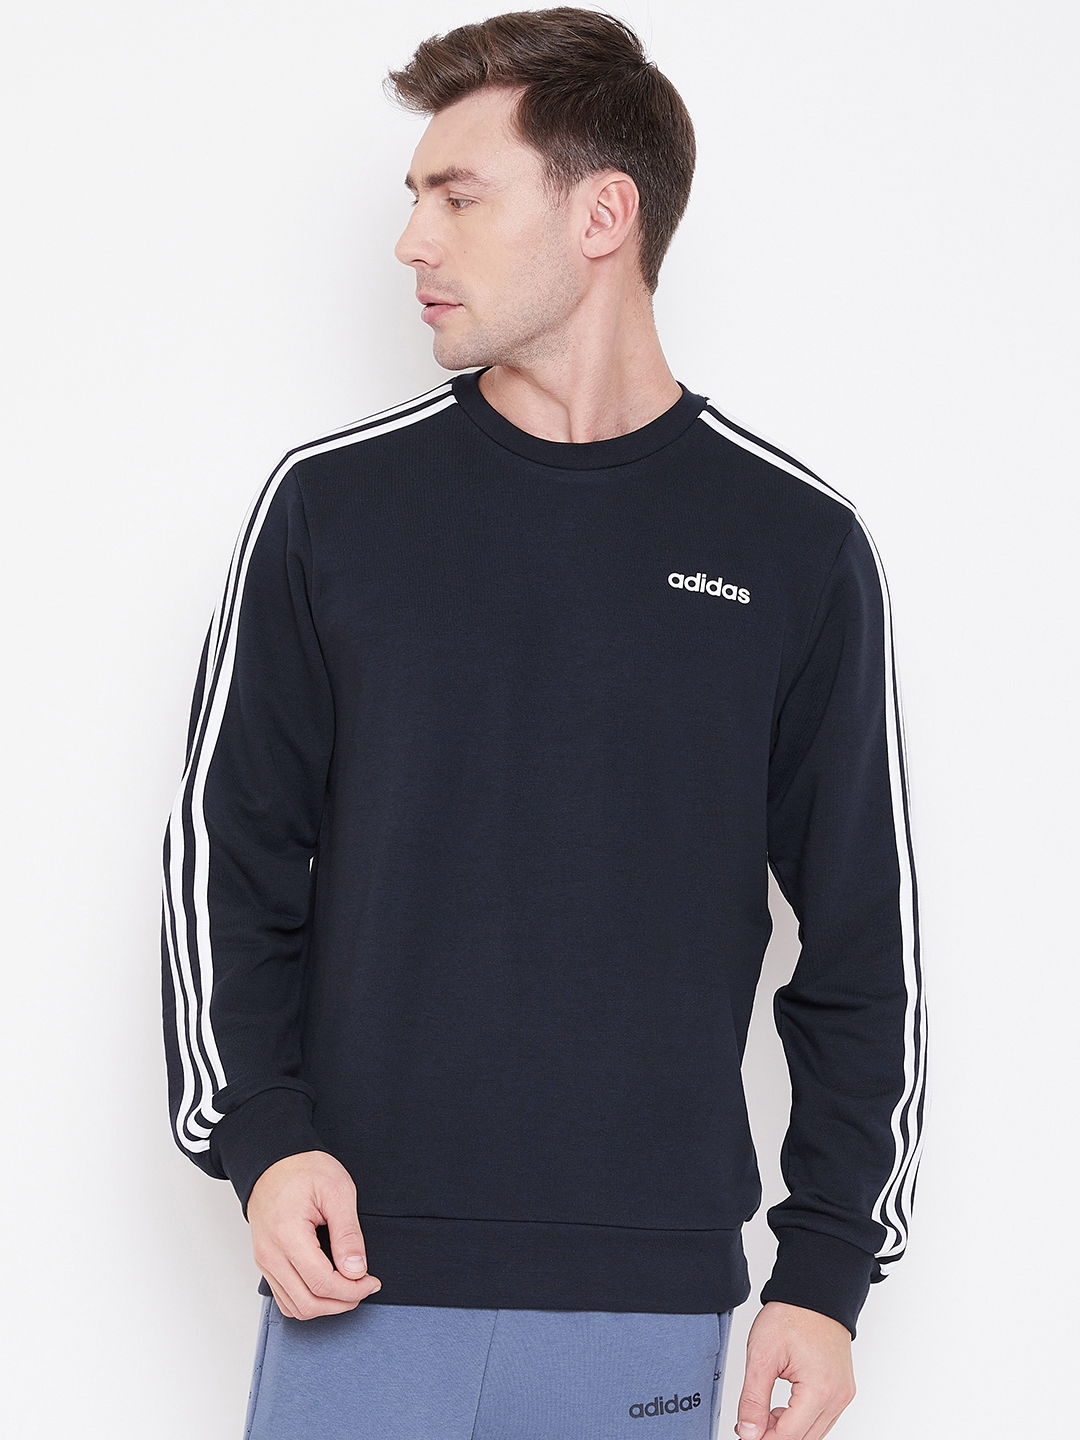 ADIDAS Men Navy Blue Solid E 3S Crew FT Sweatshirt